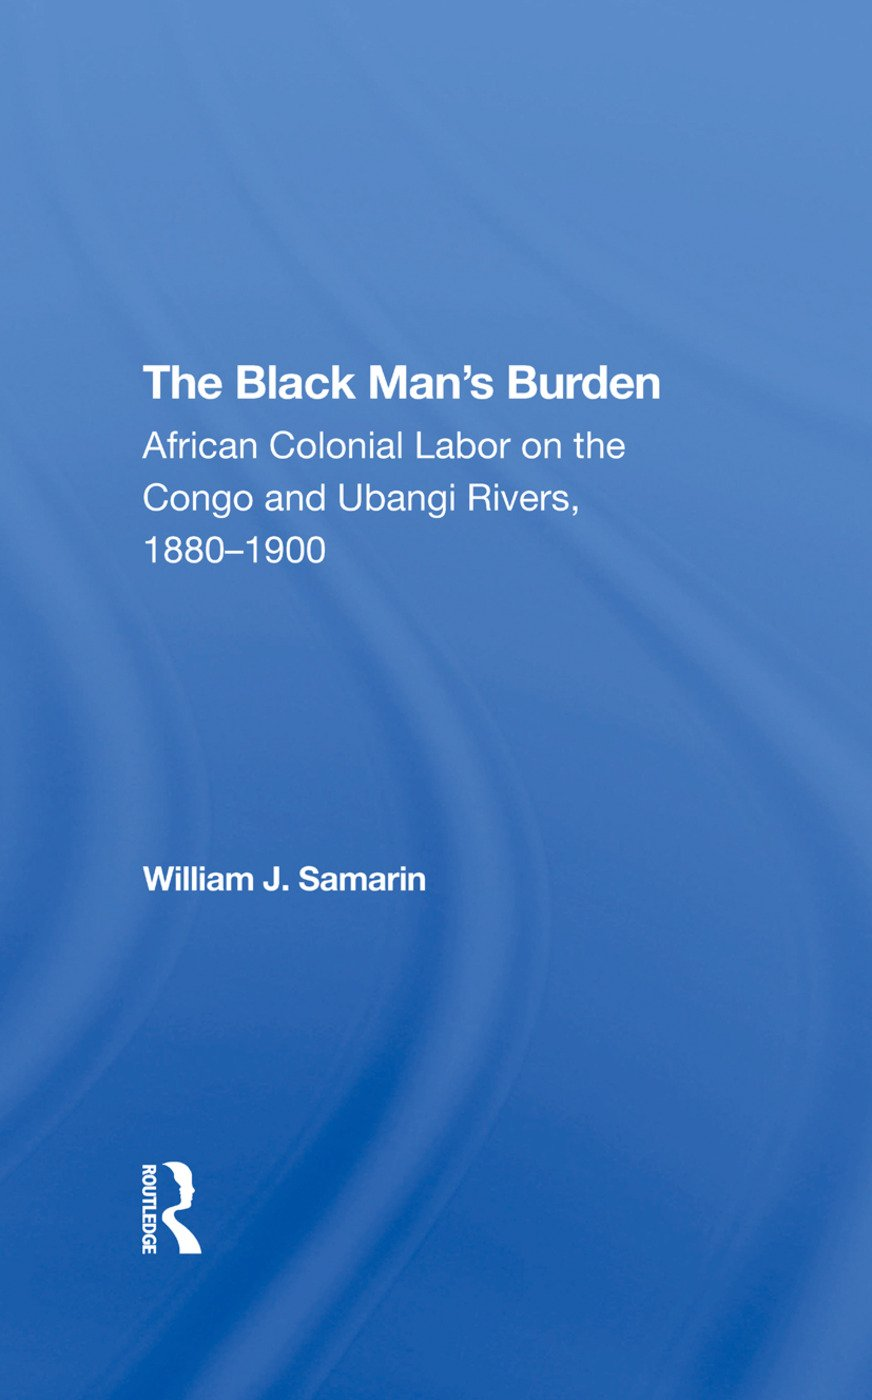 The Black Man's Burden: African Colonial Labor On The Congo And Ubangi Rivers, 1880-1900 book cover